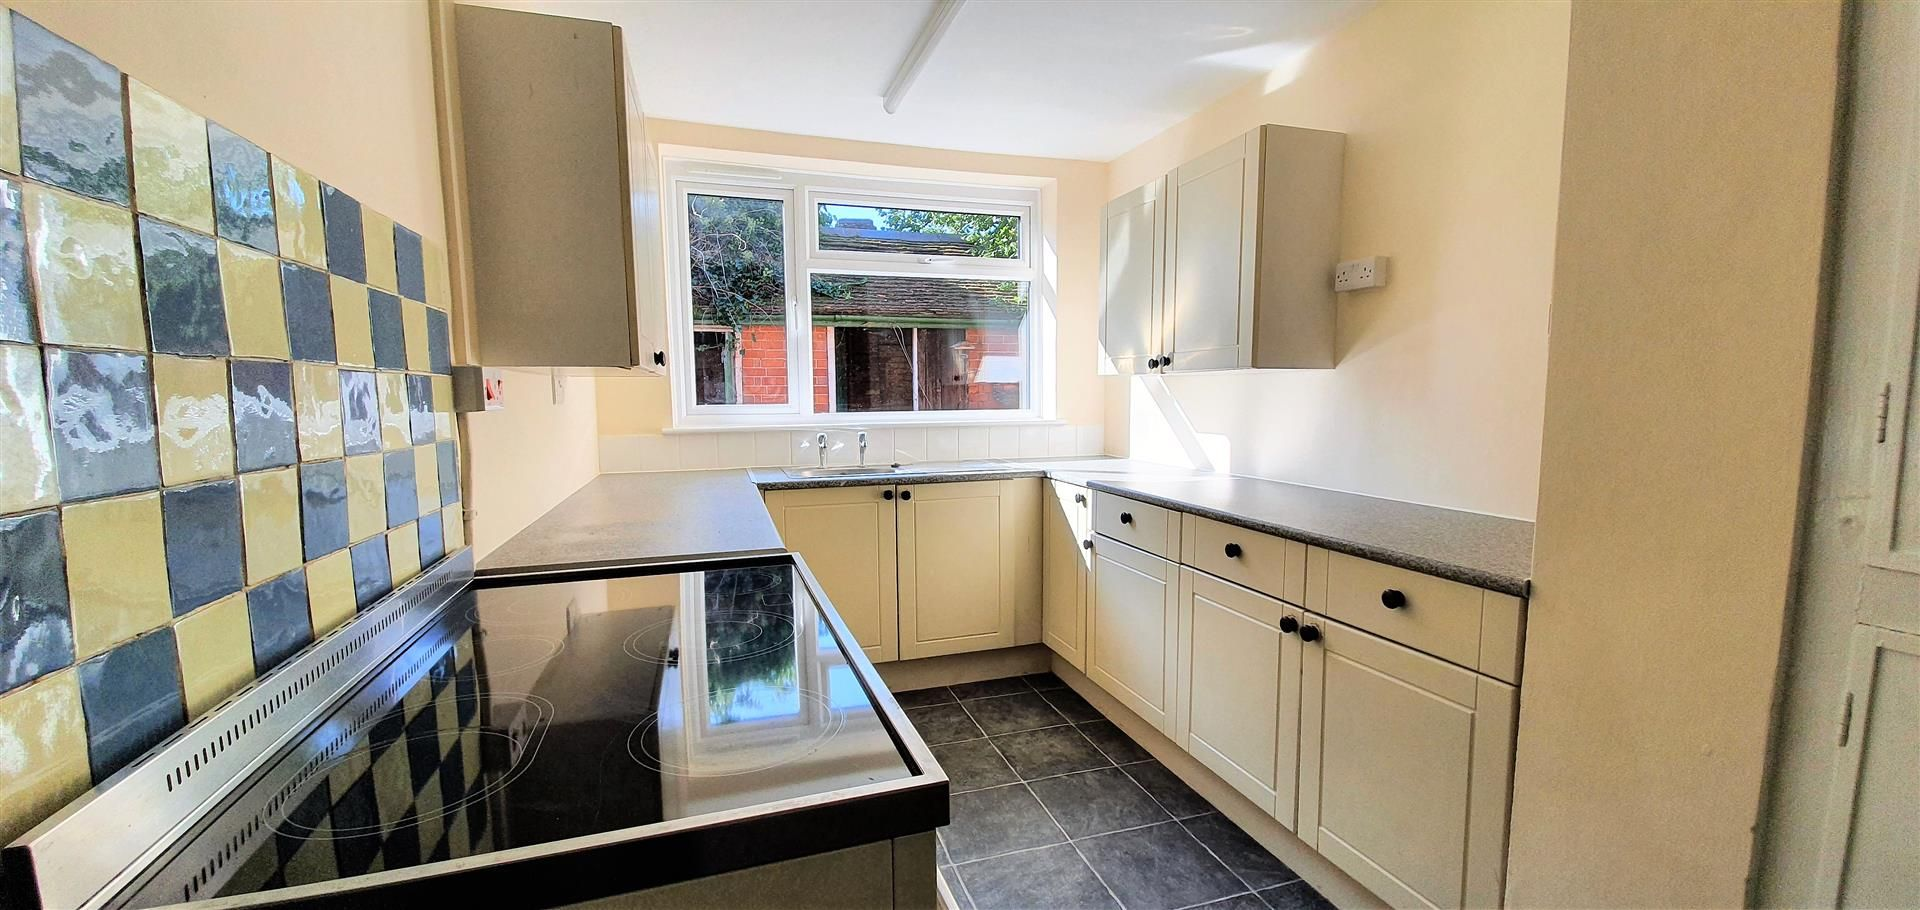 4 bed house to rent in Breinton  - Property Image 3